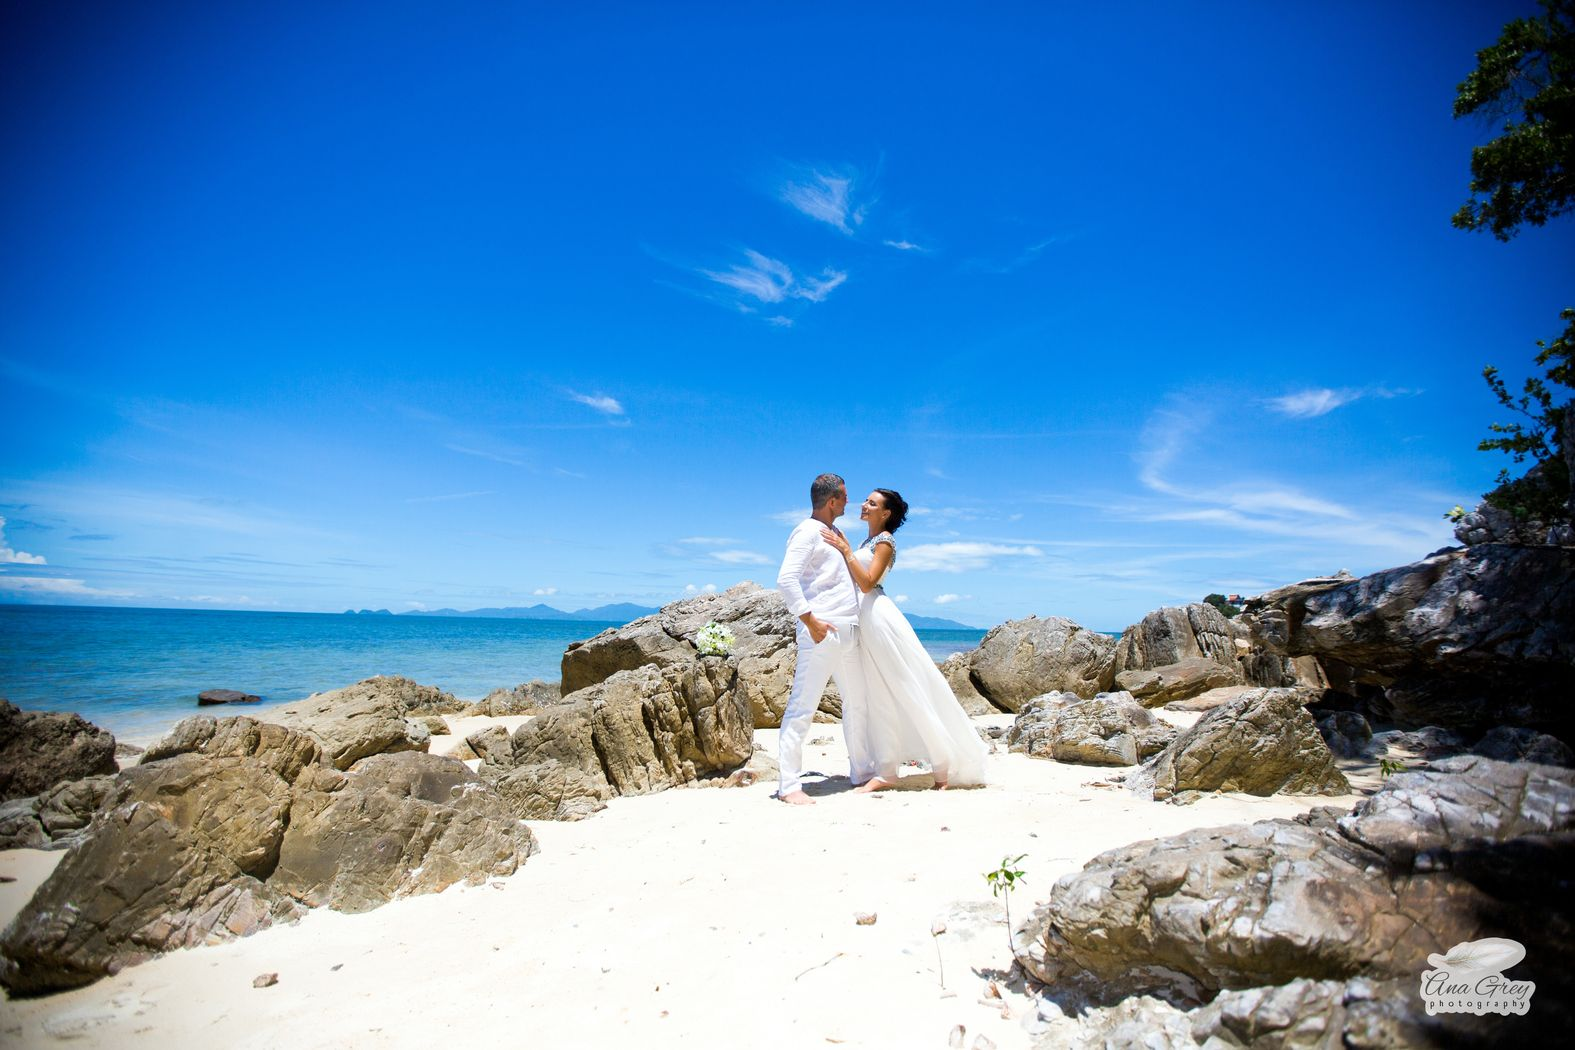 Koh Samui wedding photographer